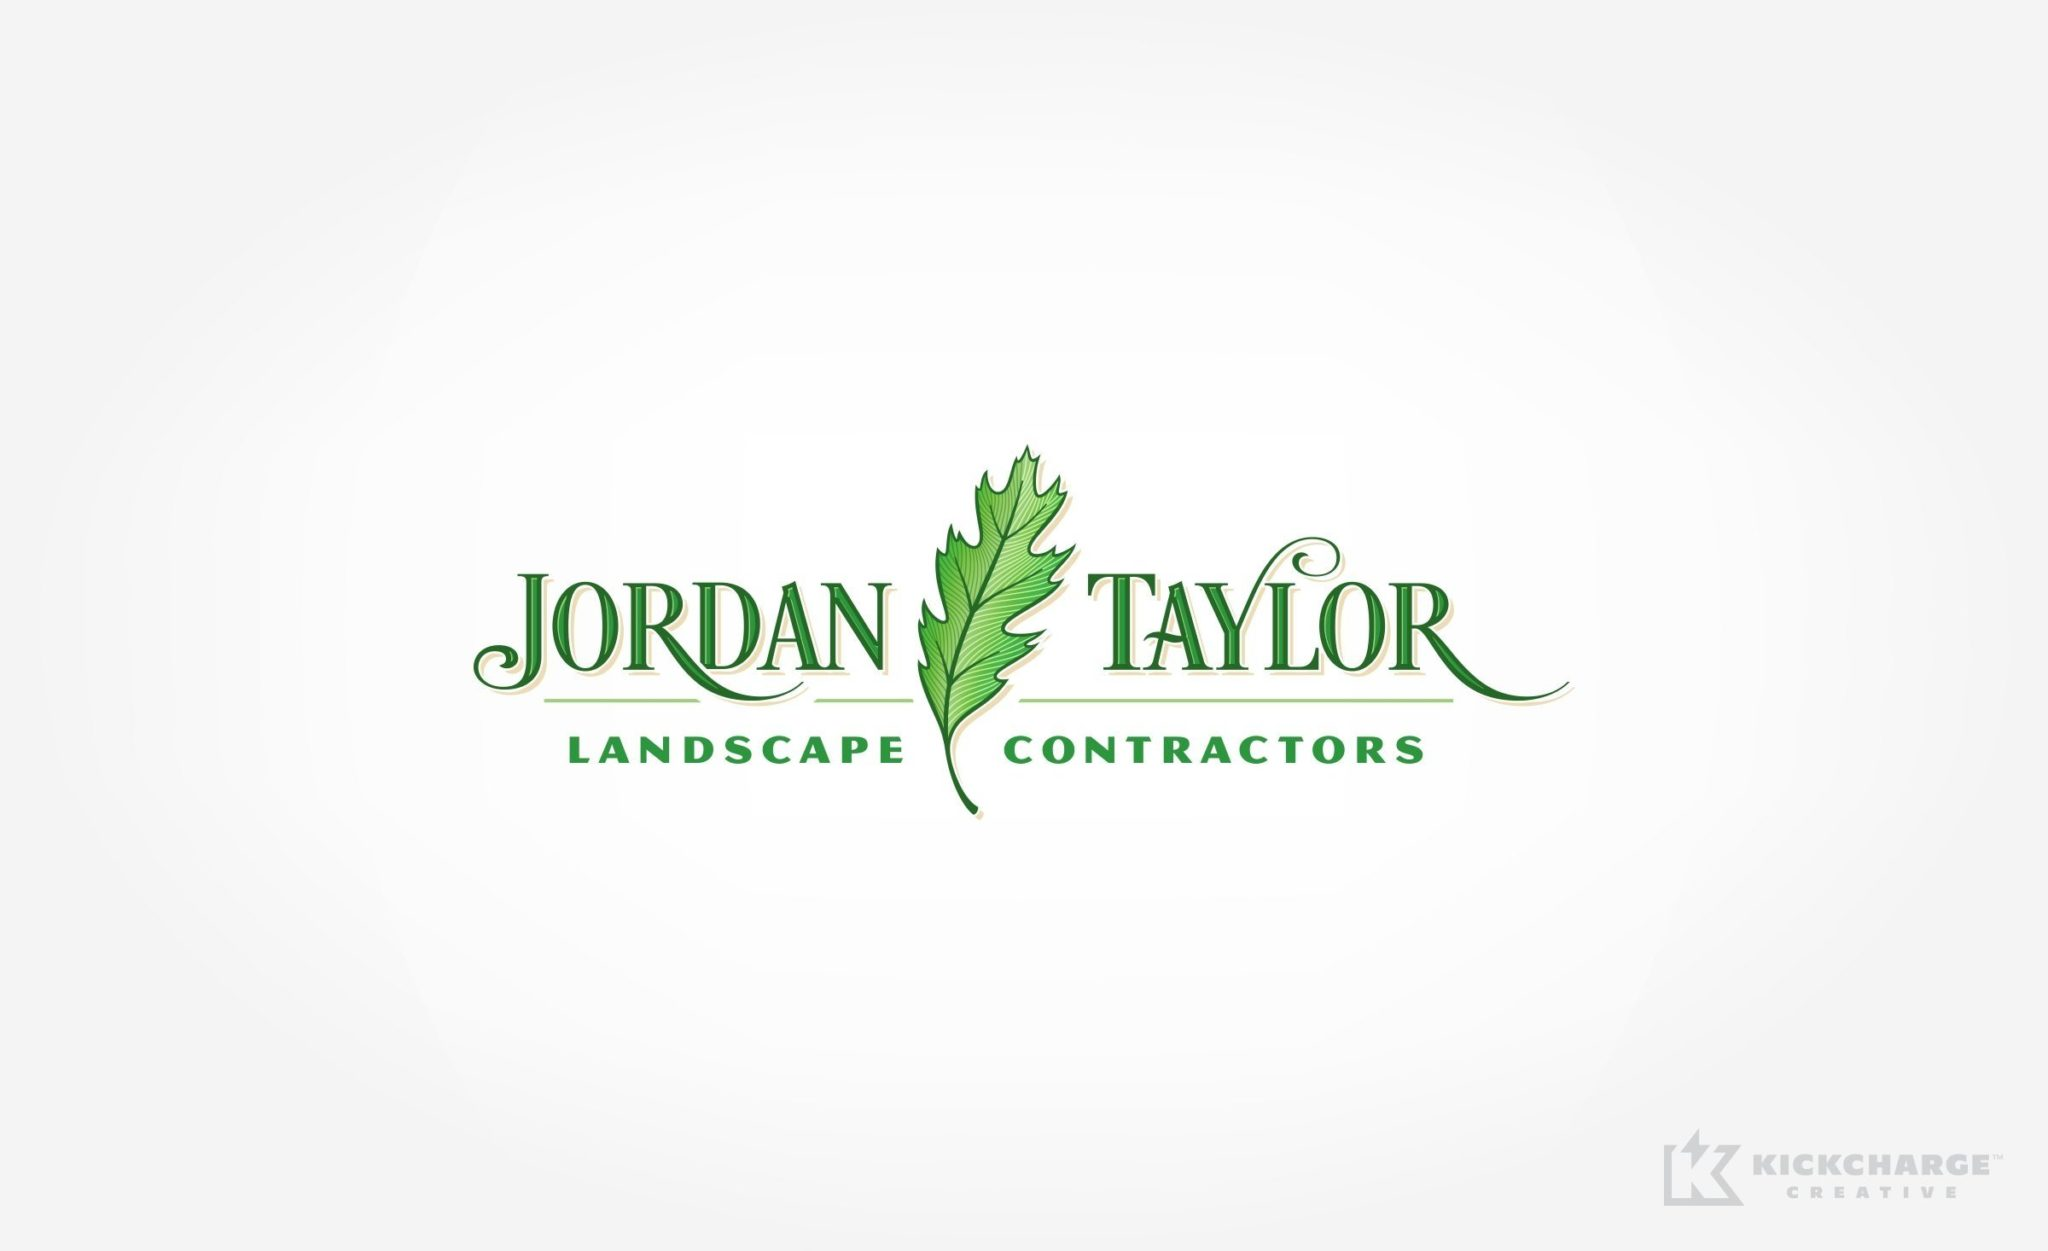 Logo design for Jordan Taylor Landscape Contractors in NJ.